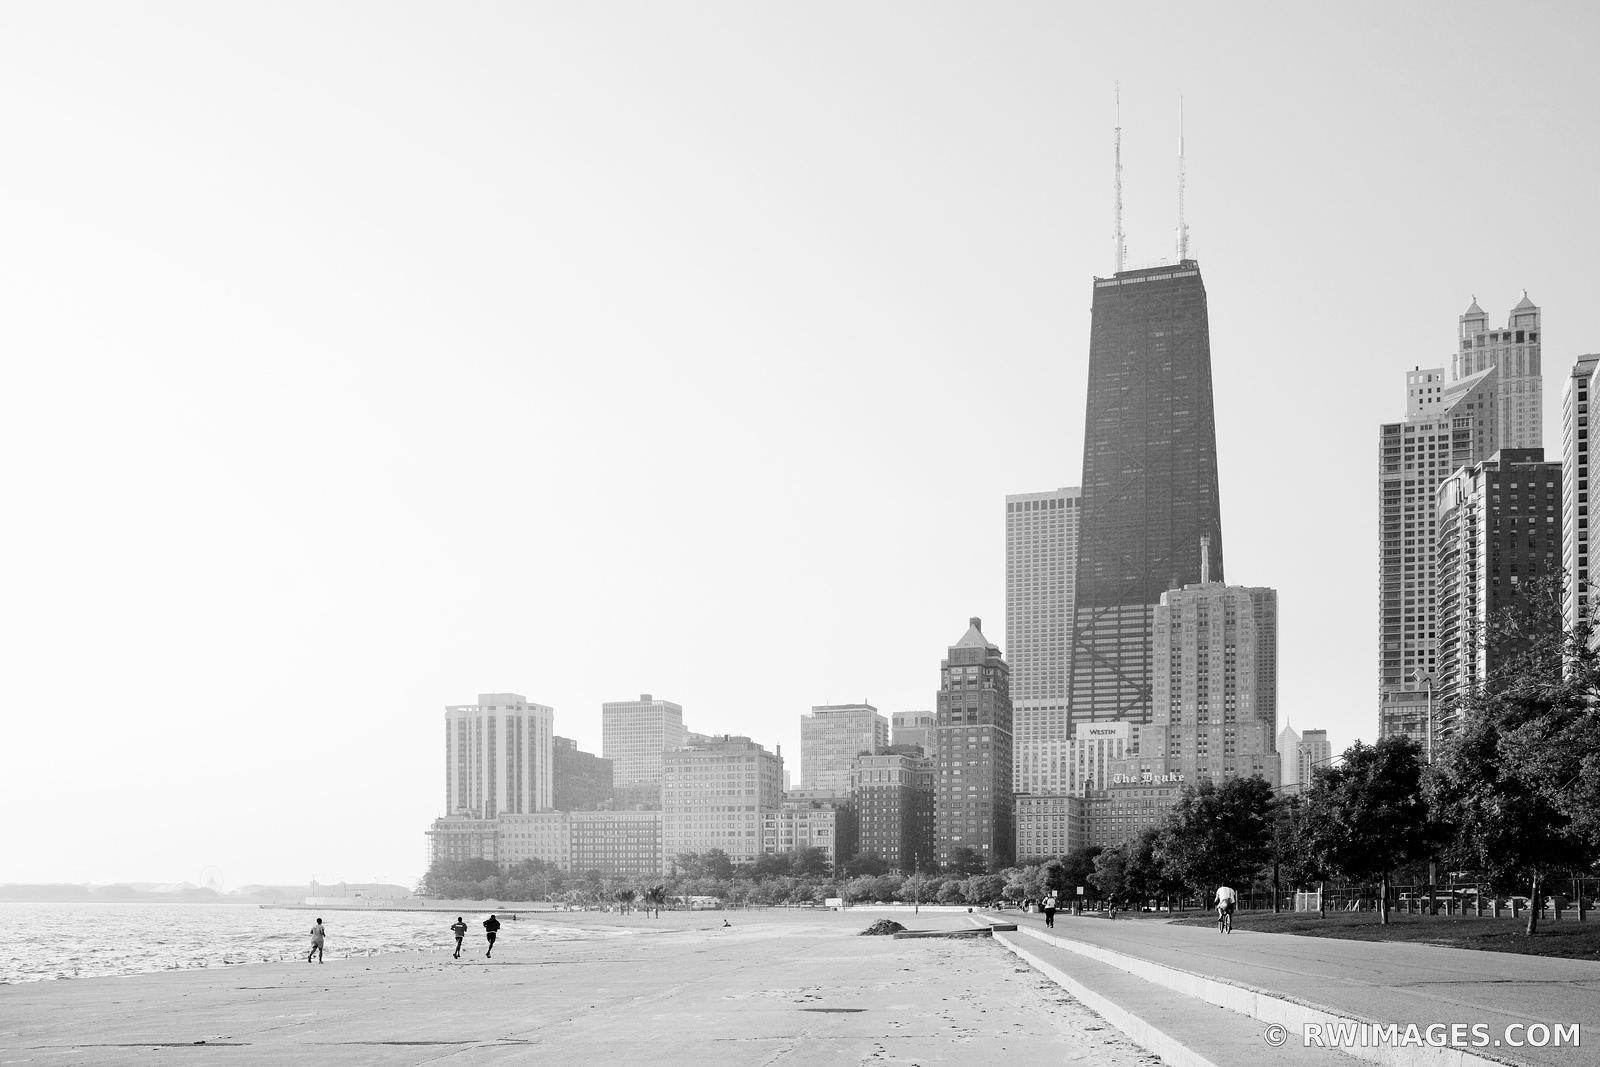 RUNNERS BIKERS AND WALKERS AT CHICAGO DOWNTOWN LAKEFRONT BLACK AND WHITE